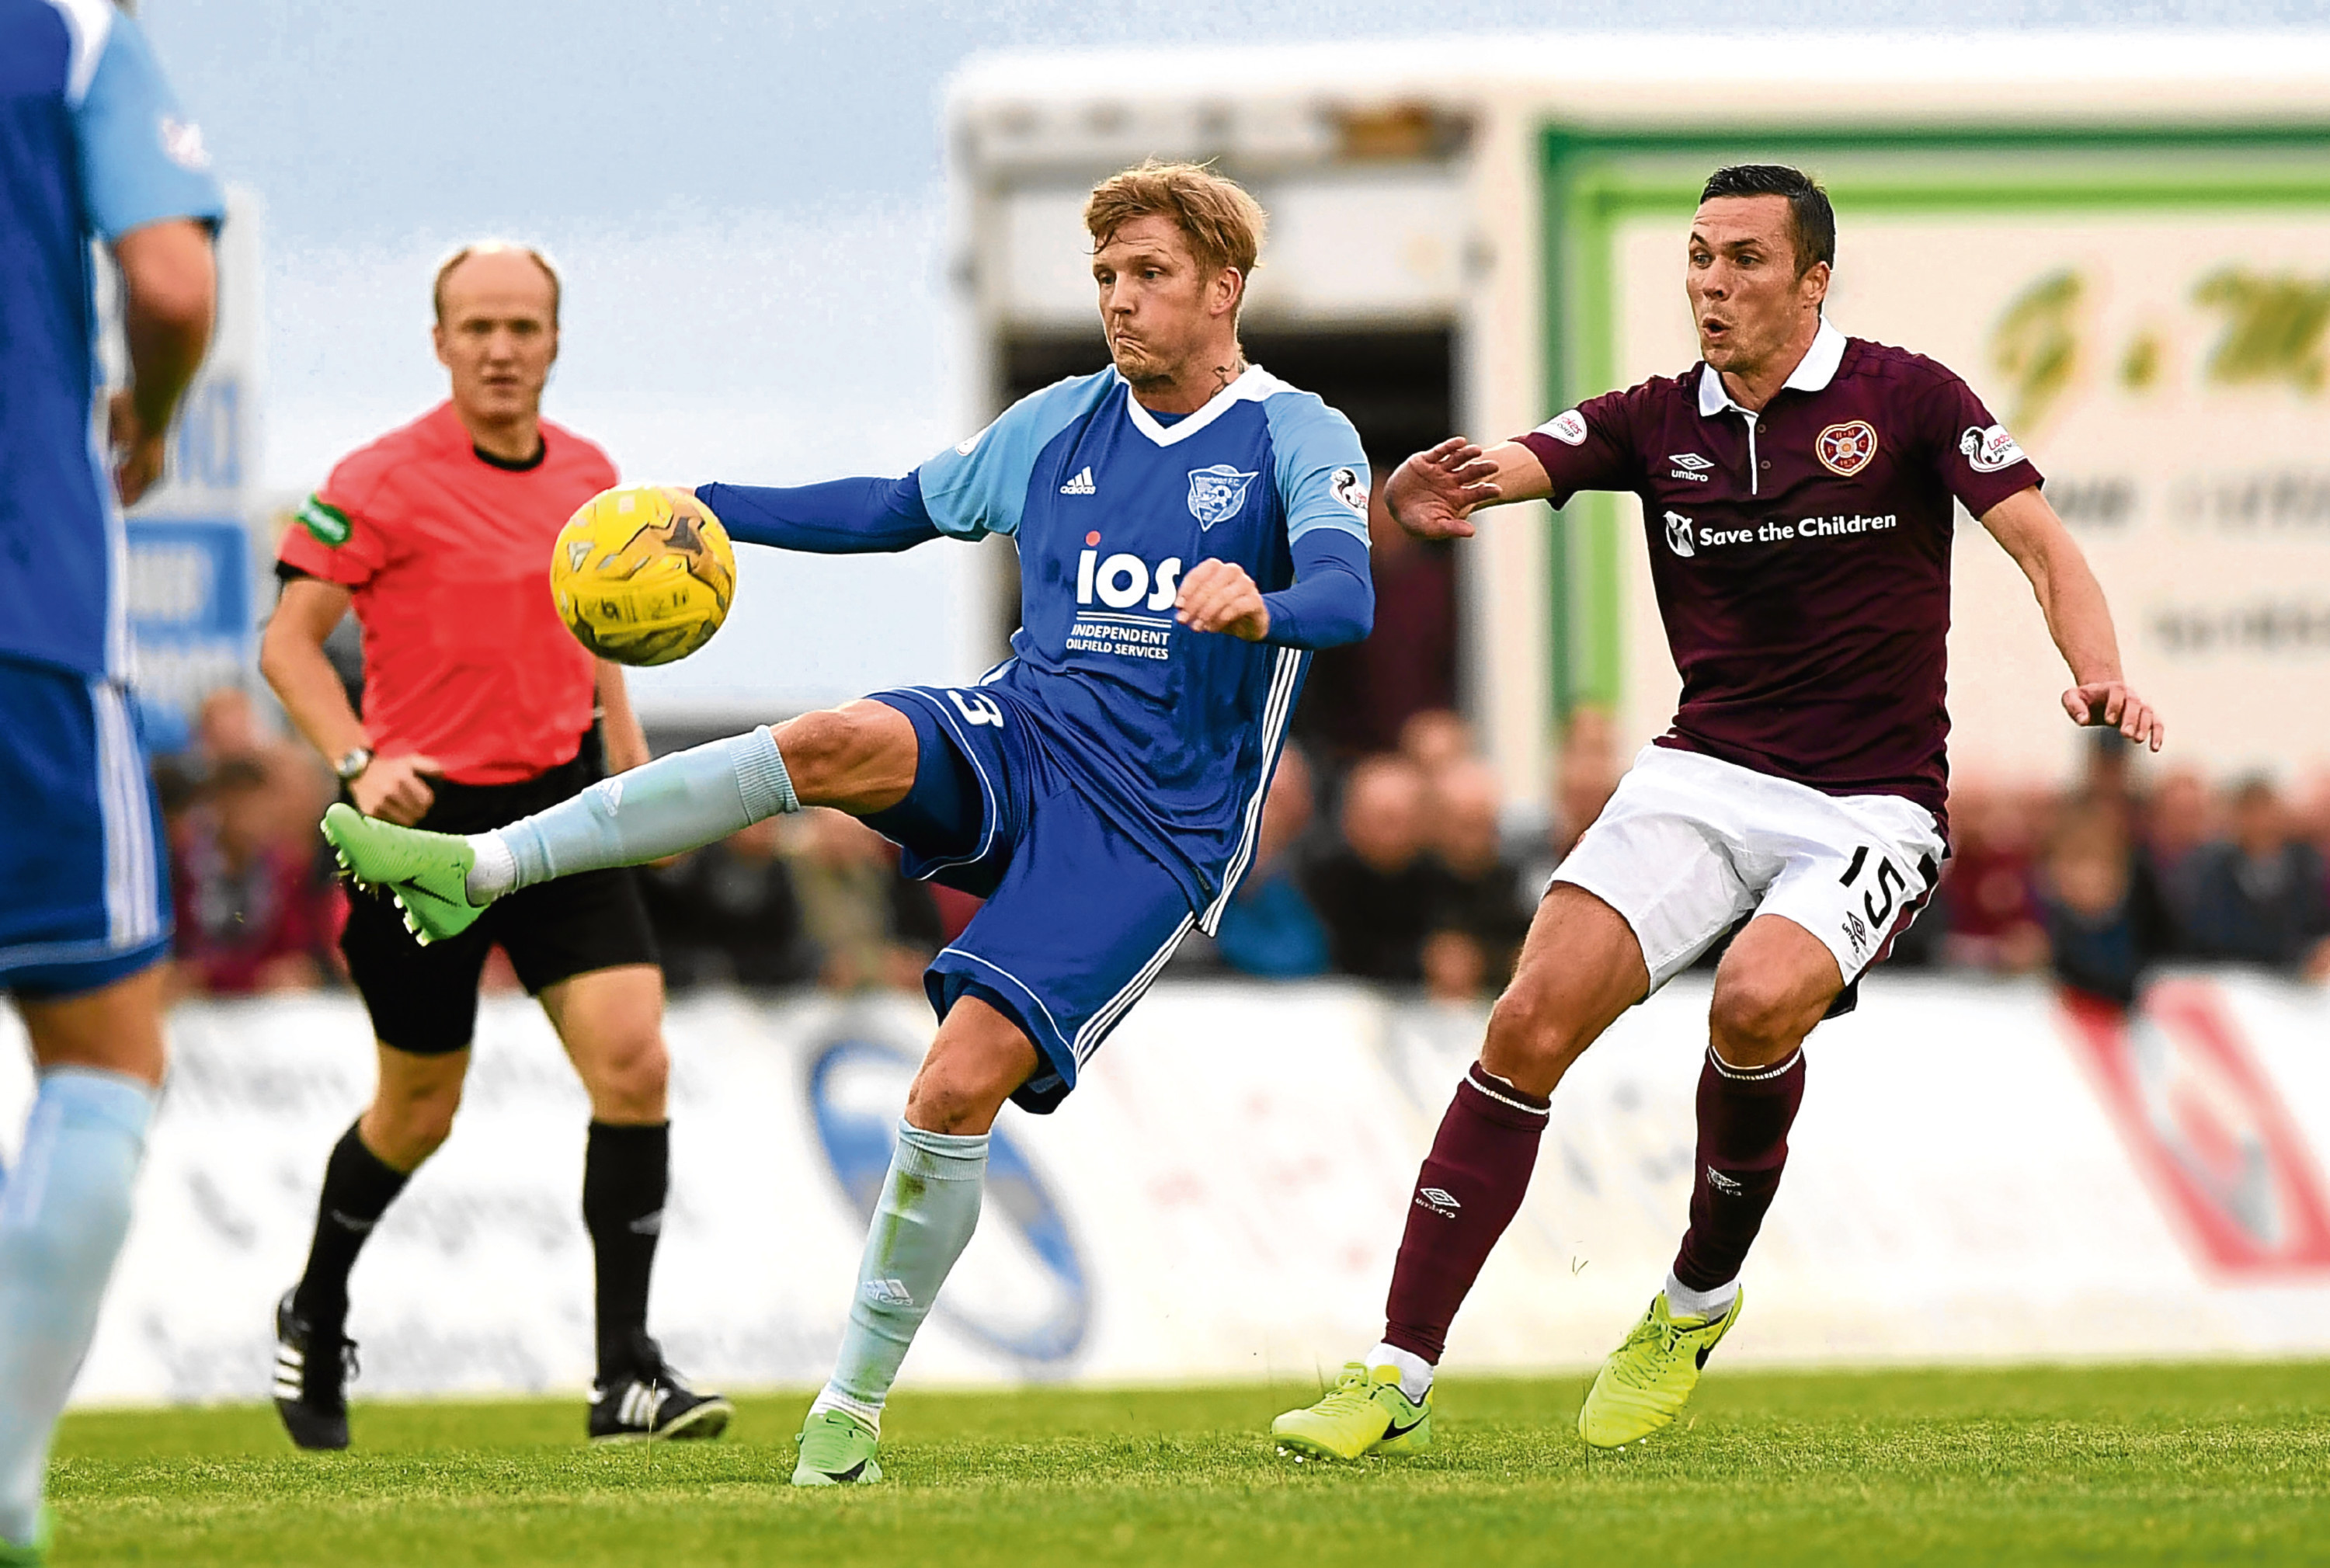 25/07/17 BETFRED CUP  PETERHEAD V HEARTS  BALMOOR STADIUM - PETERHEAD  Peterhead's Willie Gibson holds off Hearts' Don Cowie